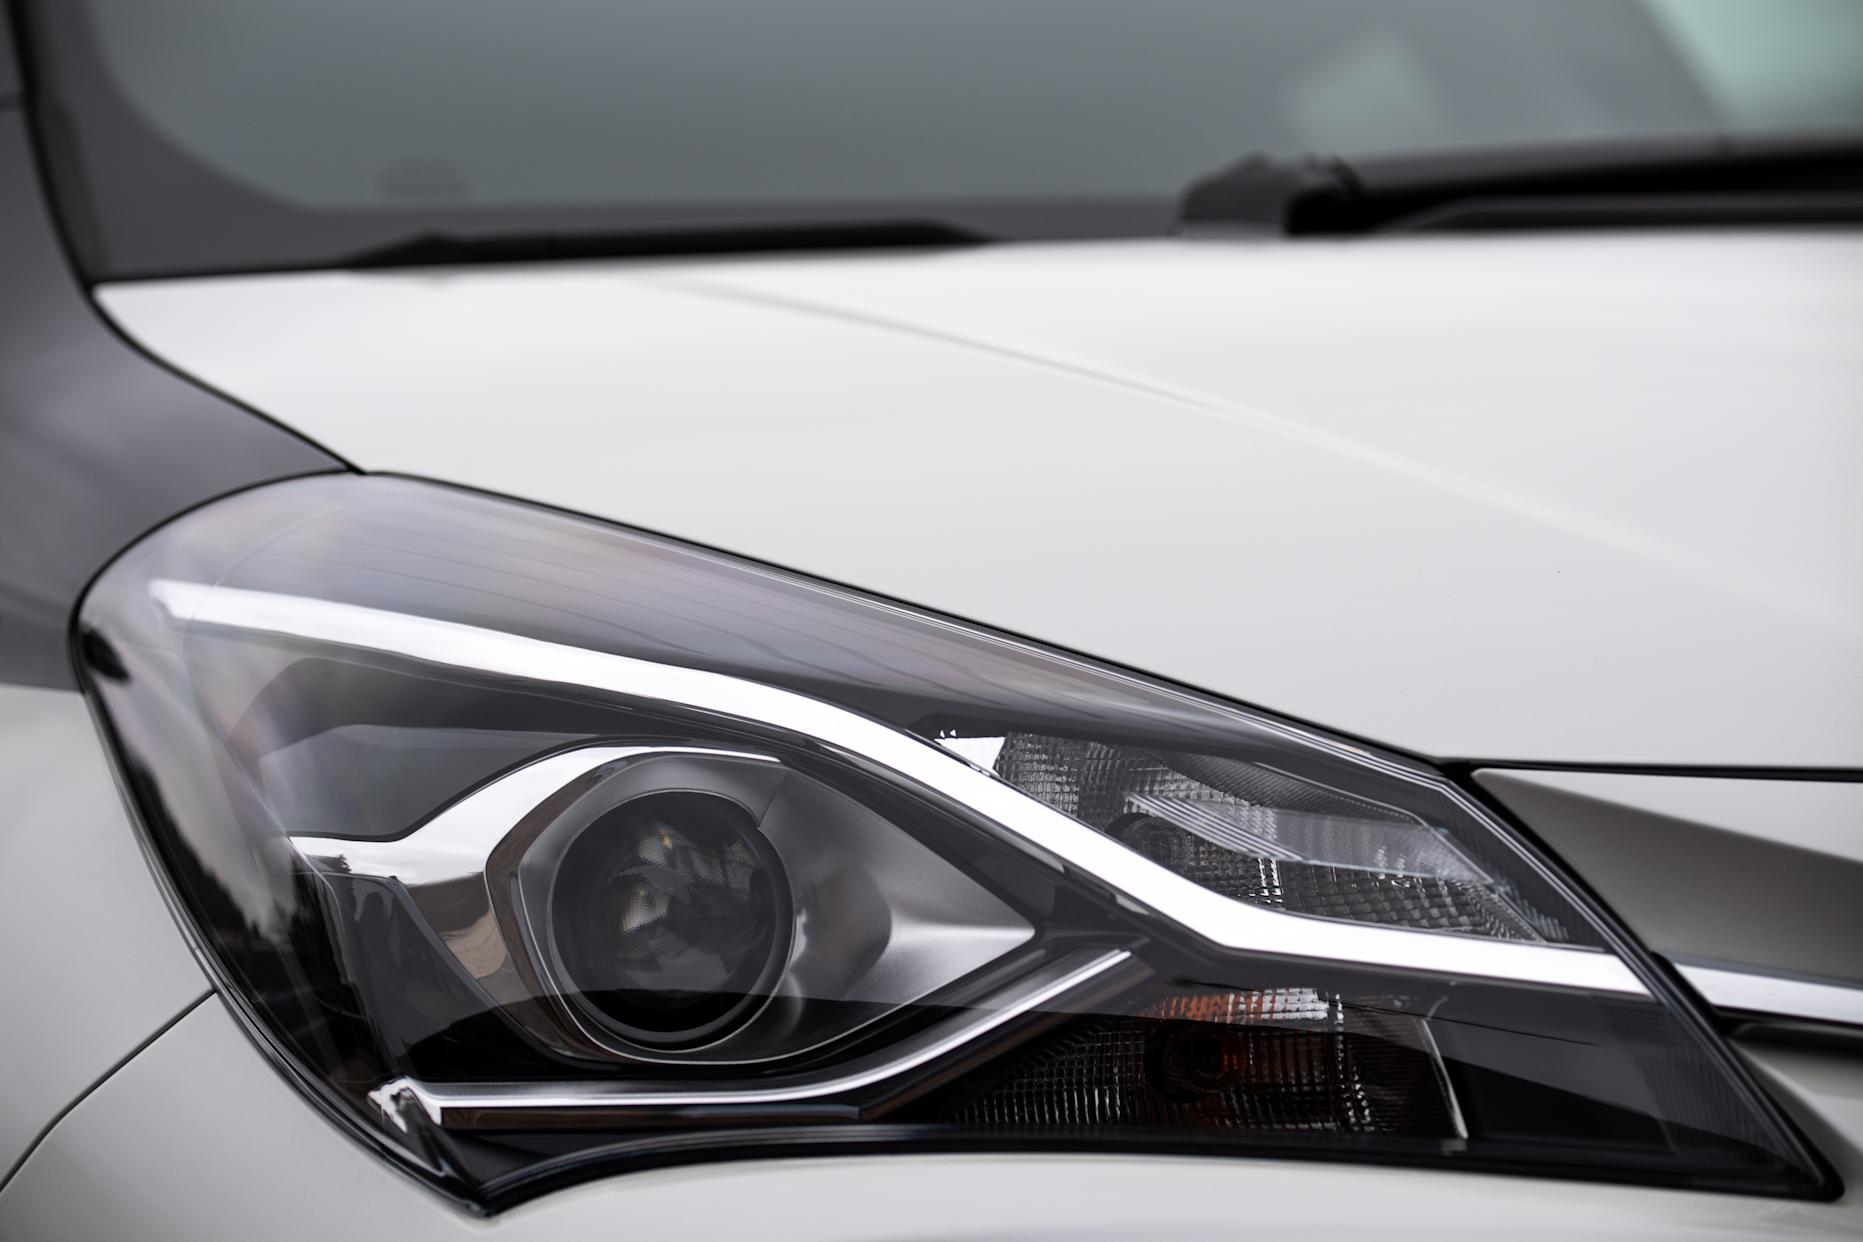 LED headlights are a striking feature of the Y20